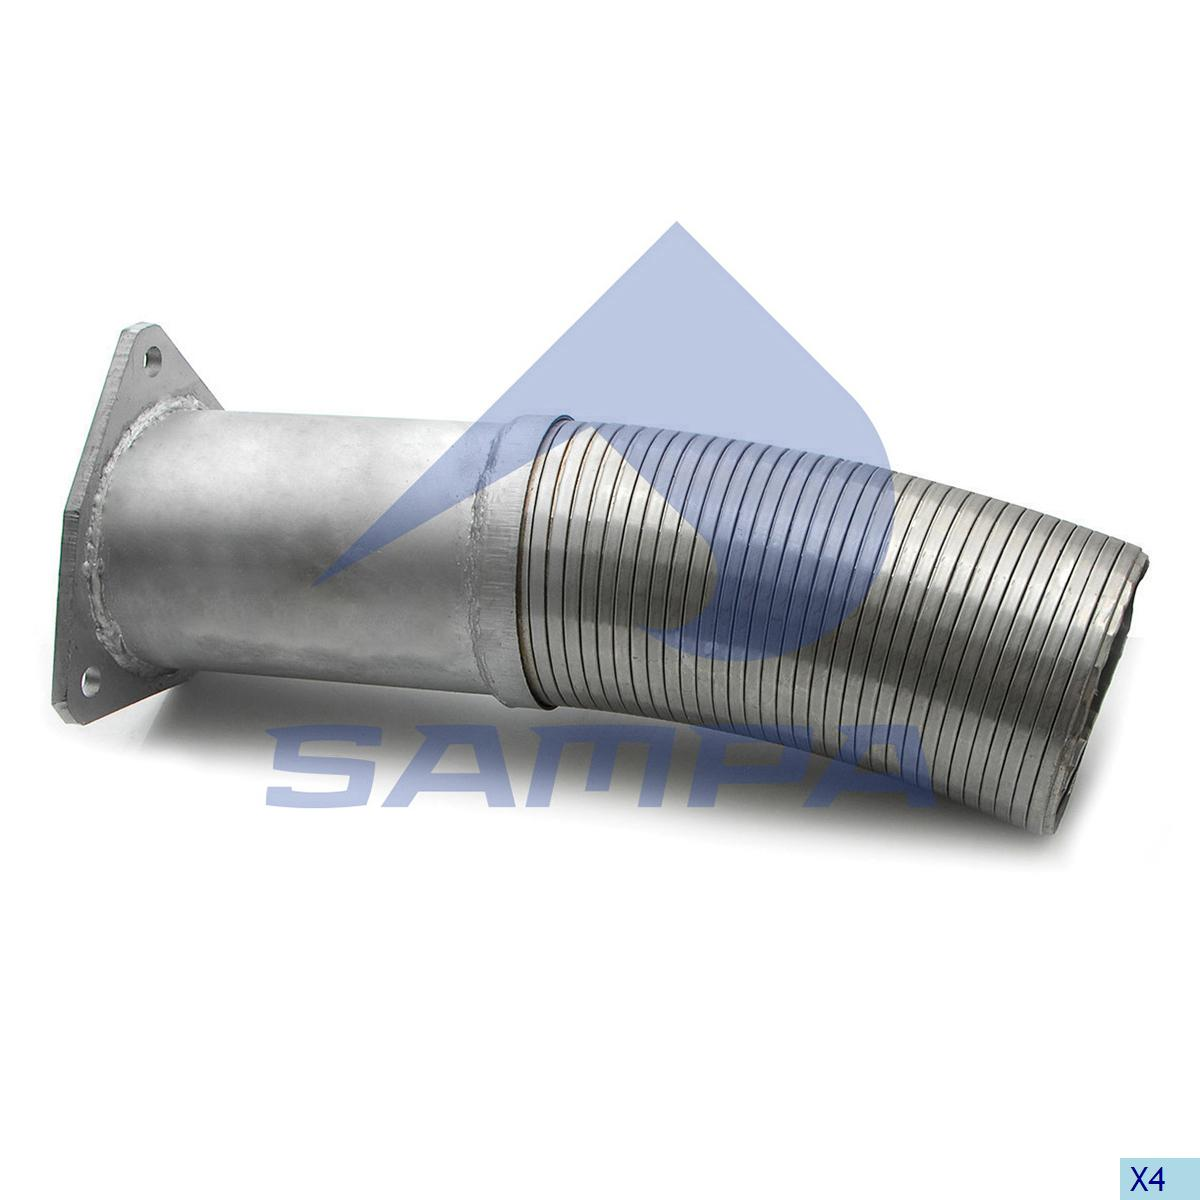 Flexible Pipe, Exhaust, Daf, Engine